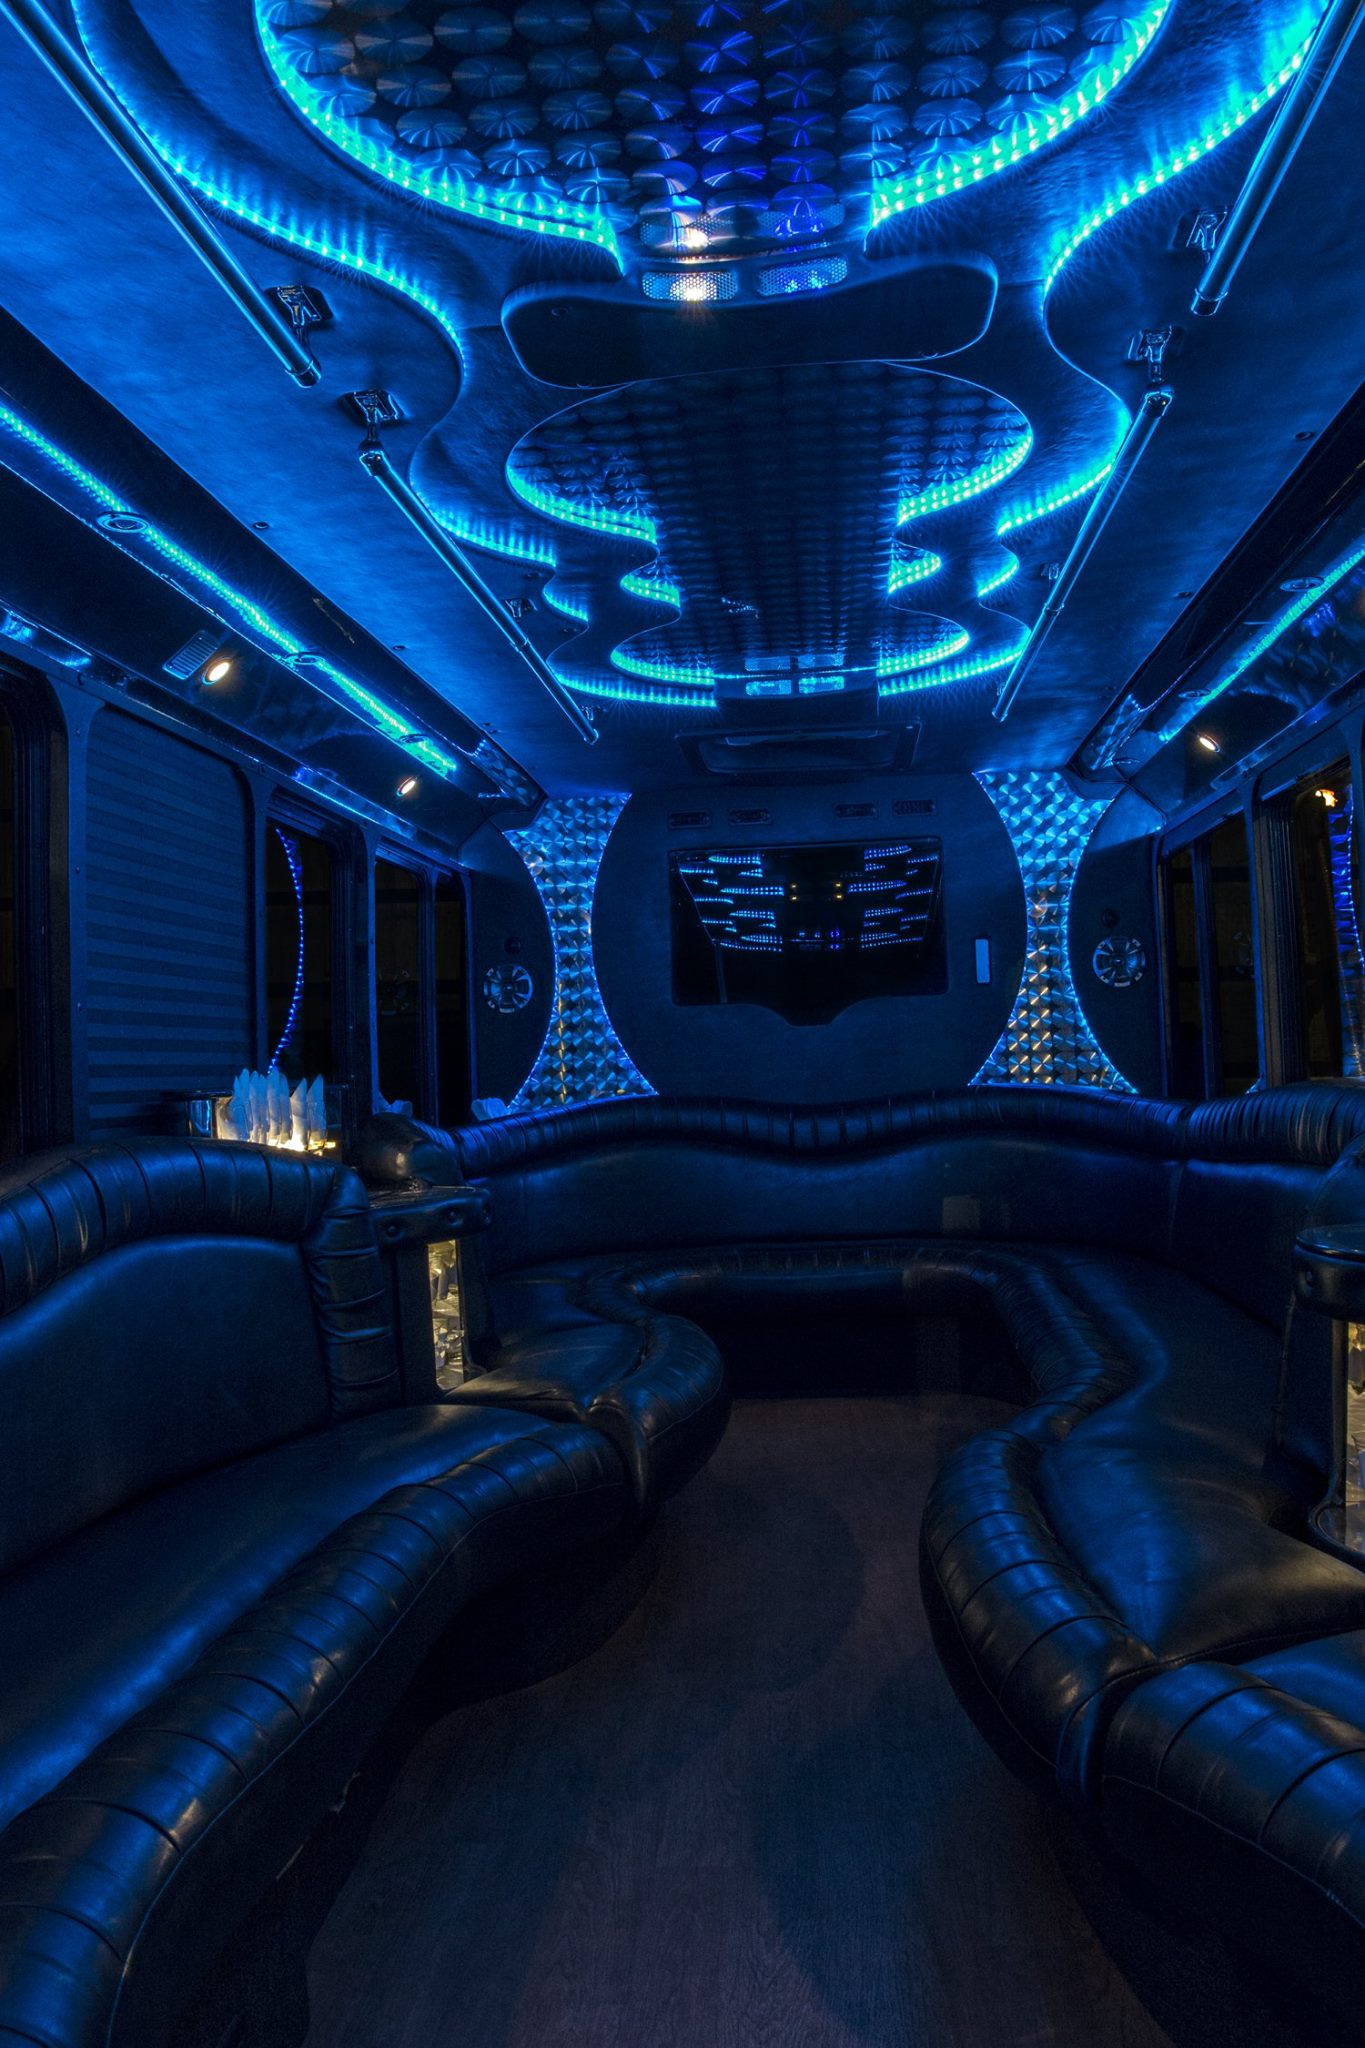 26 Passenger Luxury Limo Bus Interior